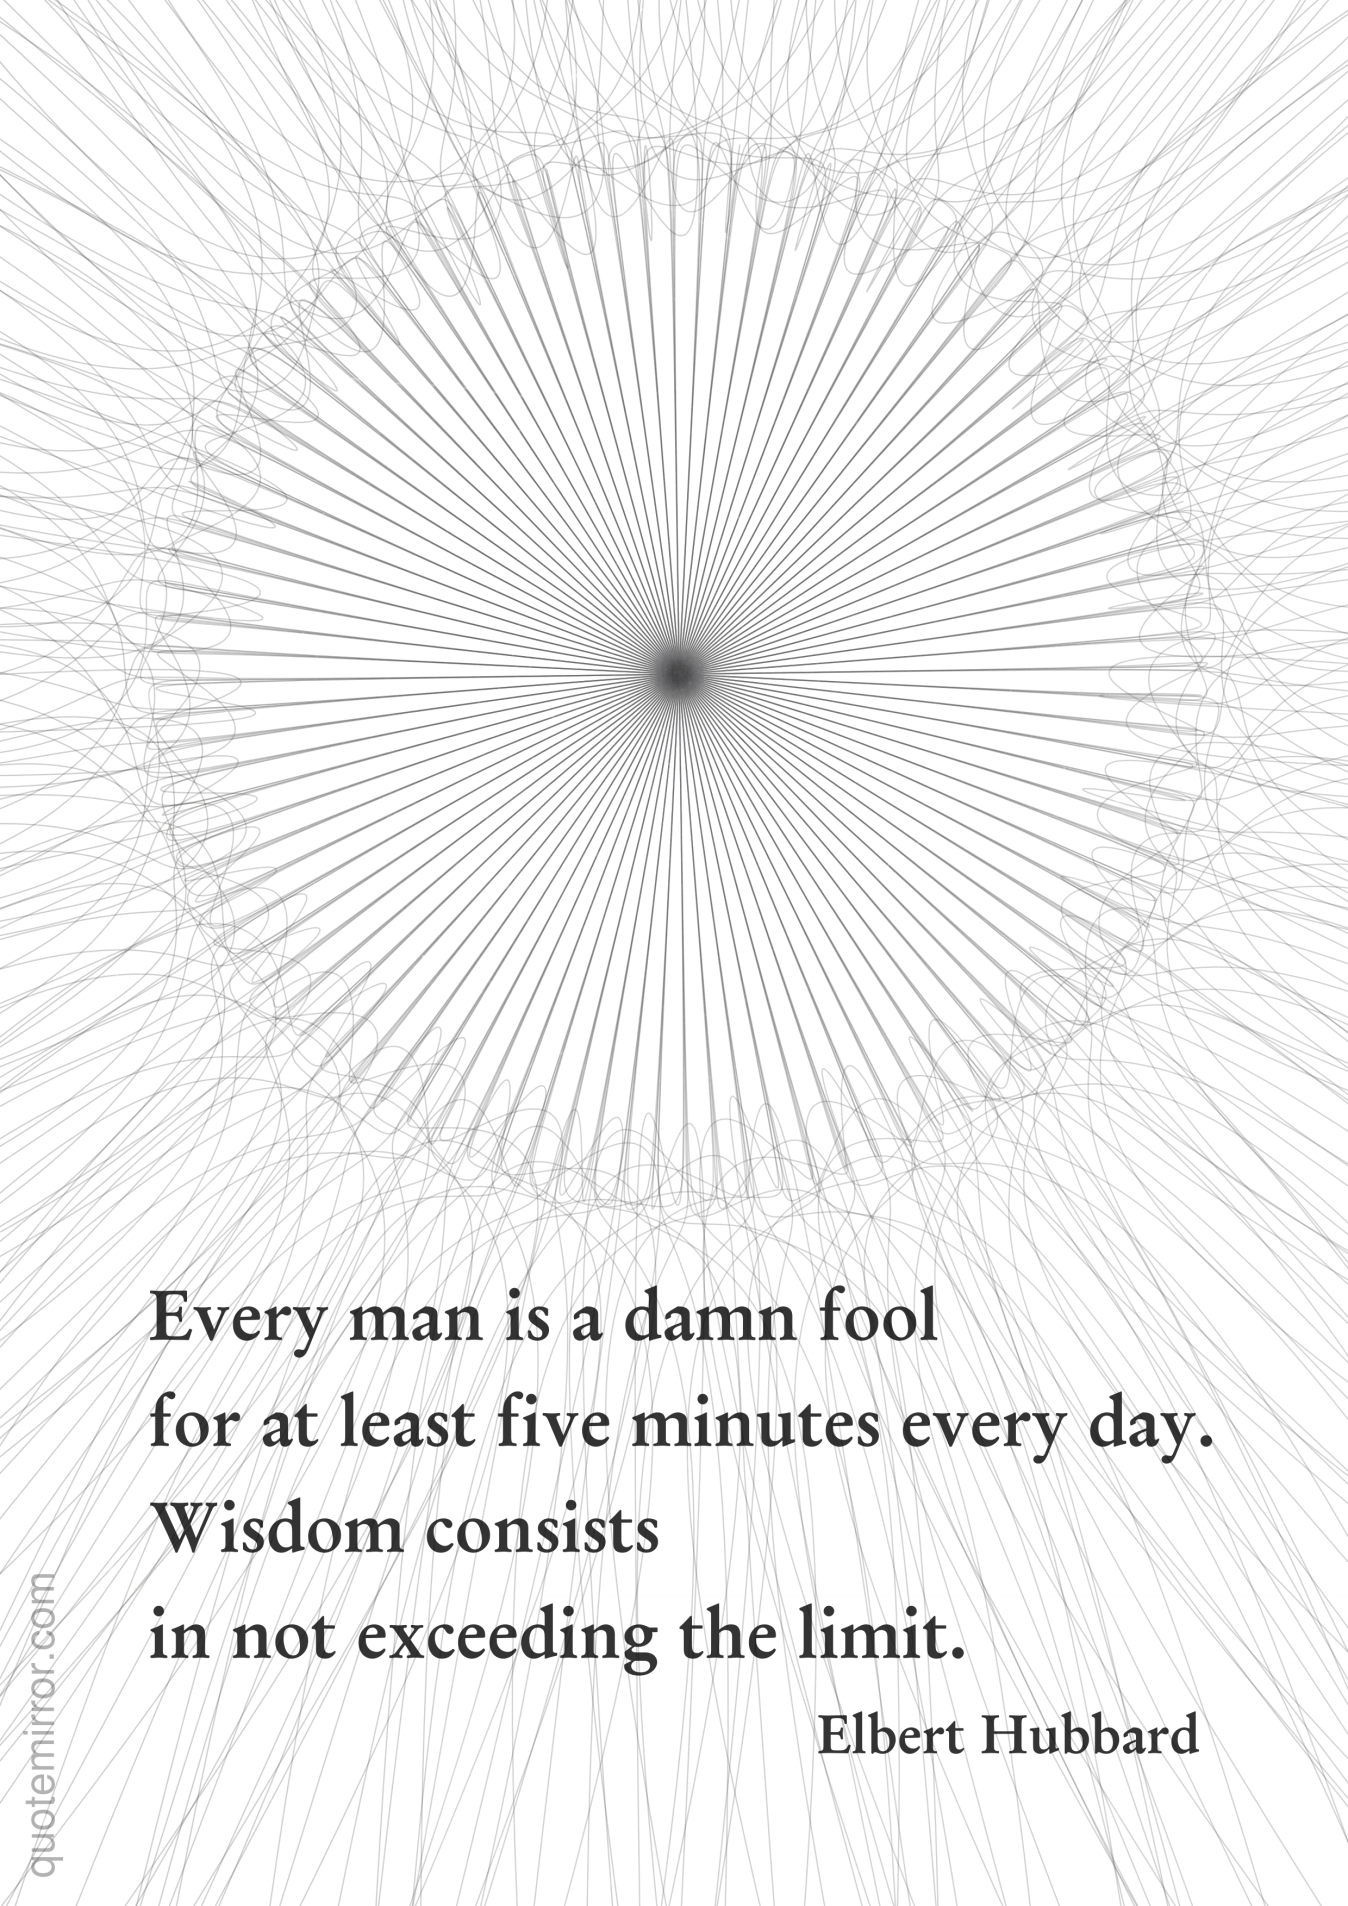 Fool Quotes Every Man Is A Damn Fool  Exceed Wisdom And Fool Quotes